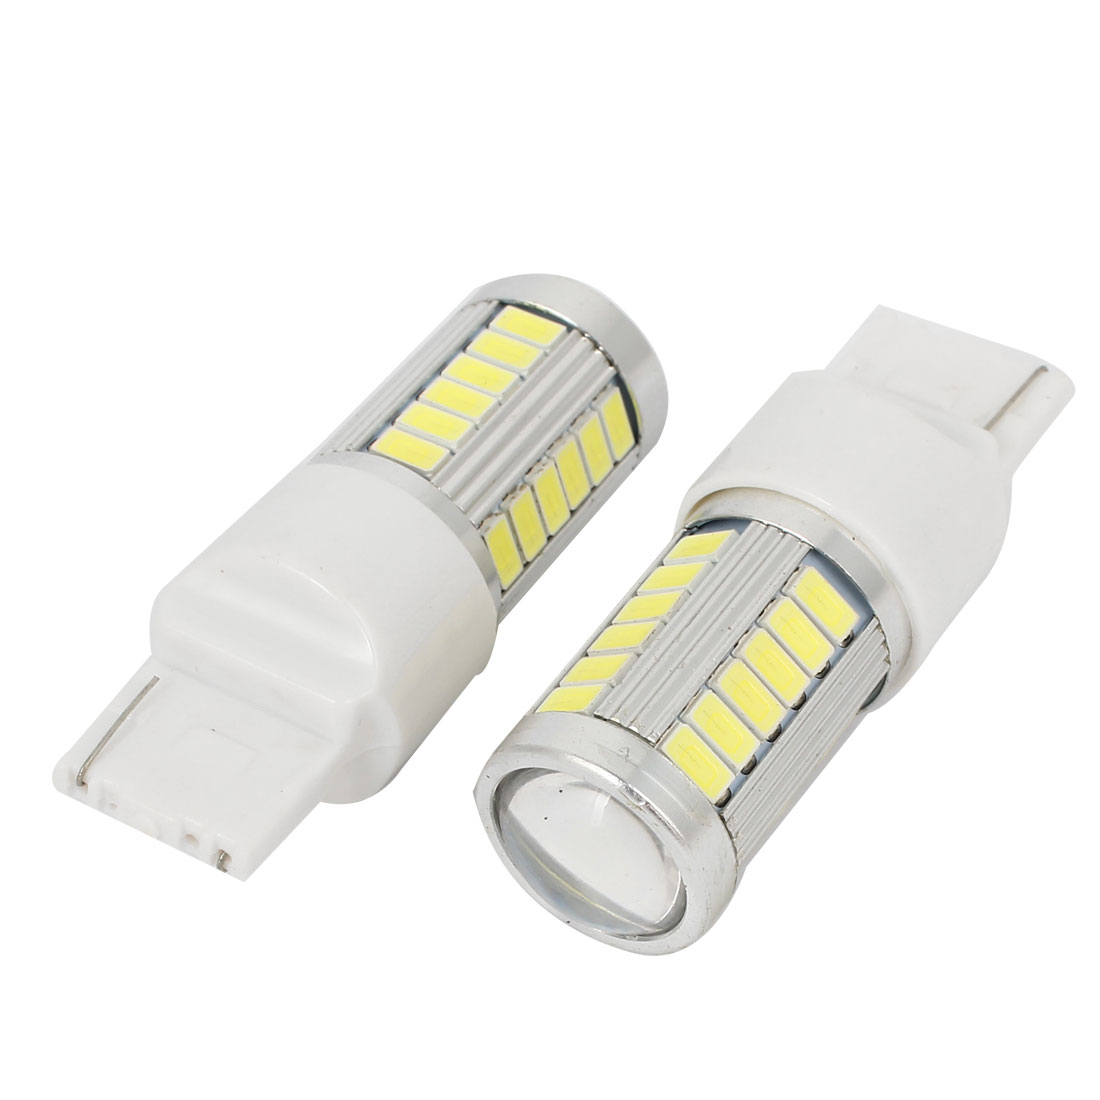 2 Pcs T20 7440 33 5630 SMD LED Lens Light Turning Signal Lamp White for Car